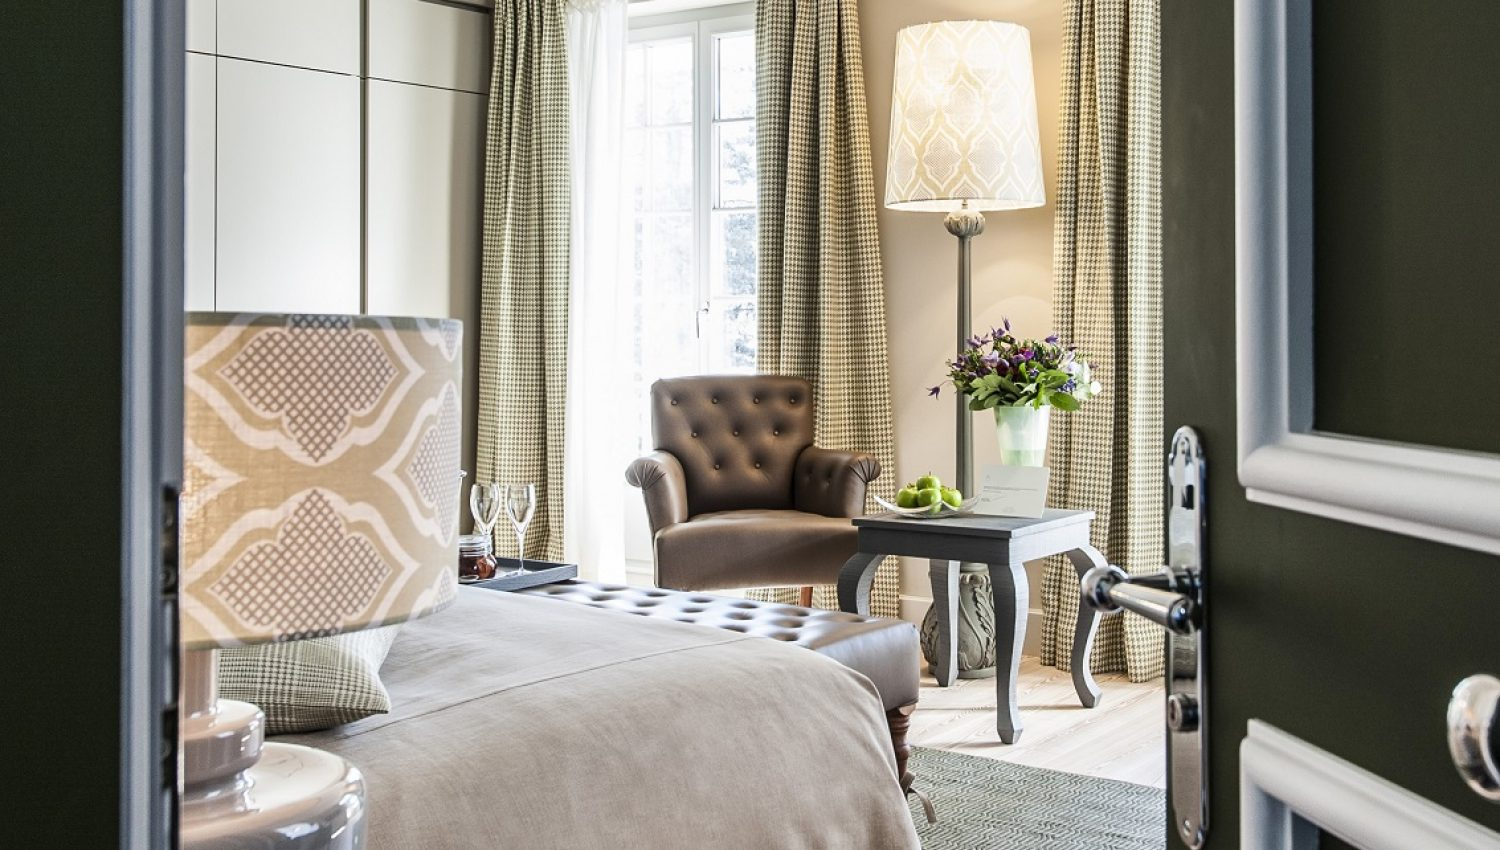 gstaad-hotel-le-grand-bellevue-22